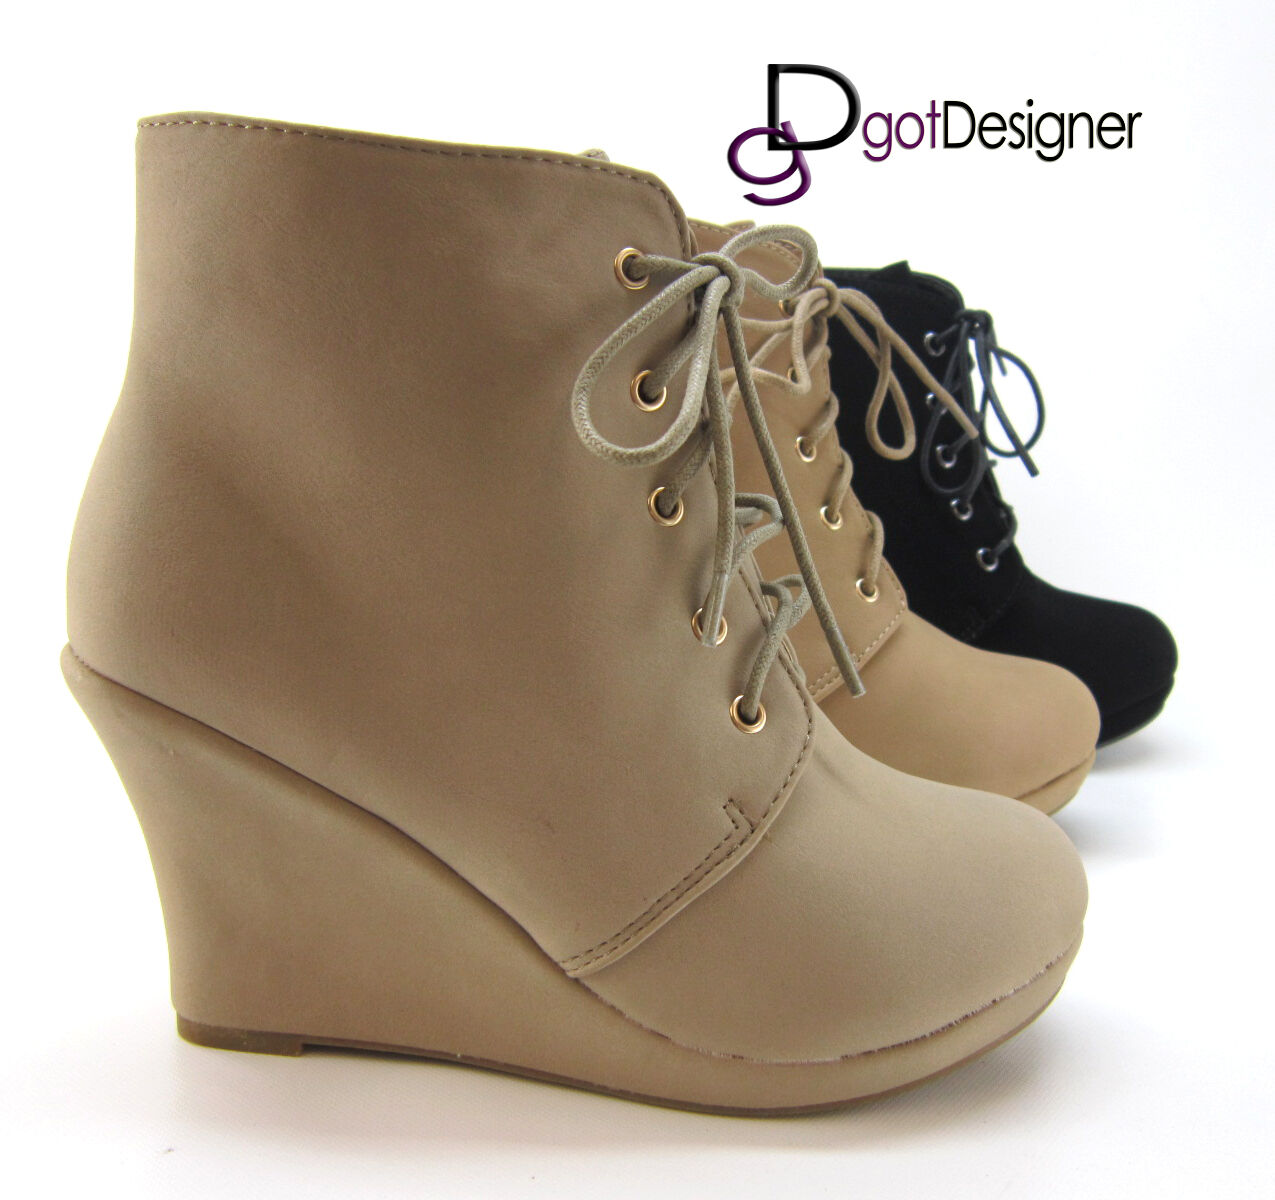 Womens Ankle Boots Bootie Fashion shoes Wedge Pump Lace Up Heels NEW All Sizes